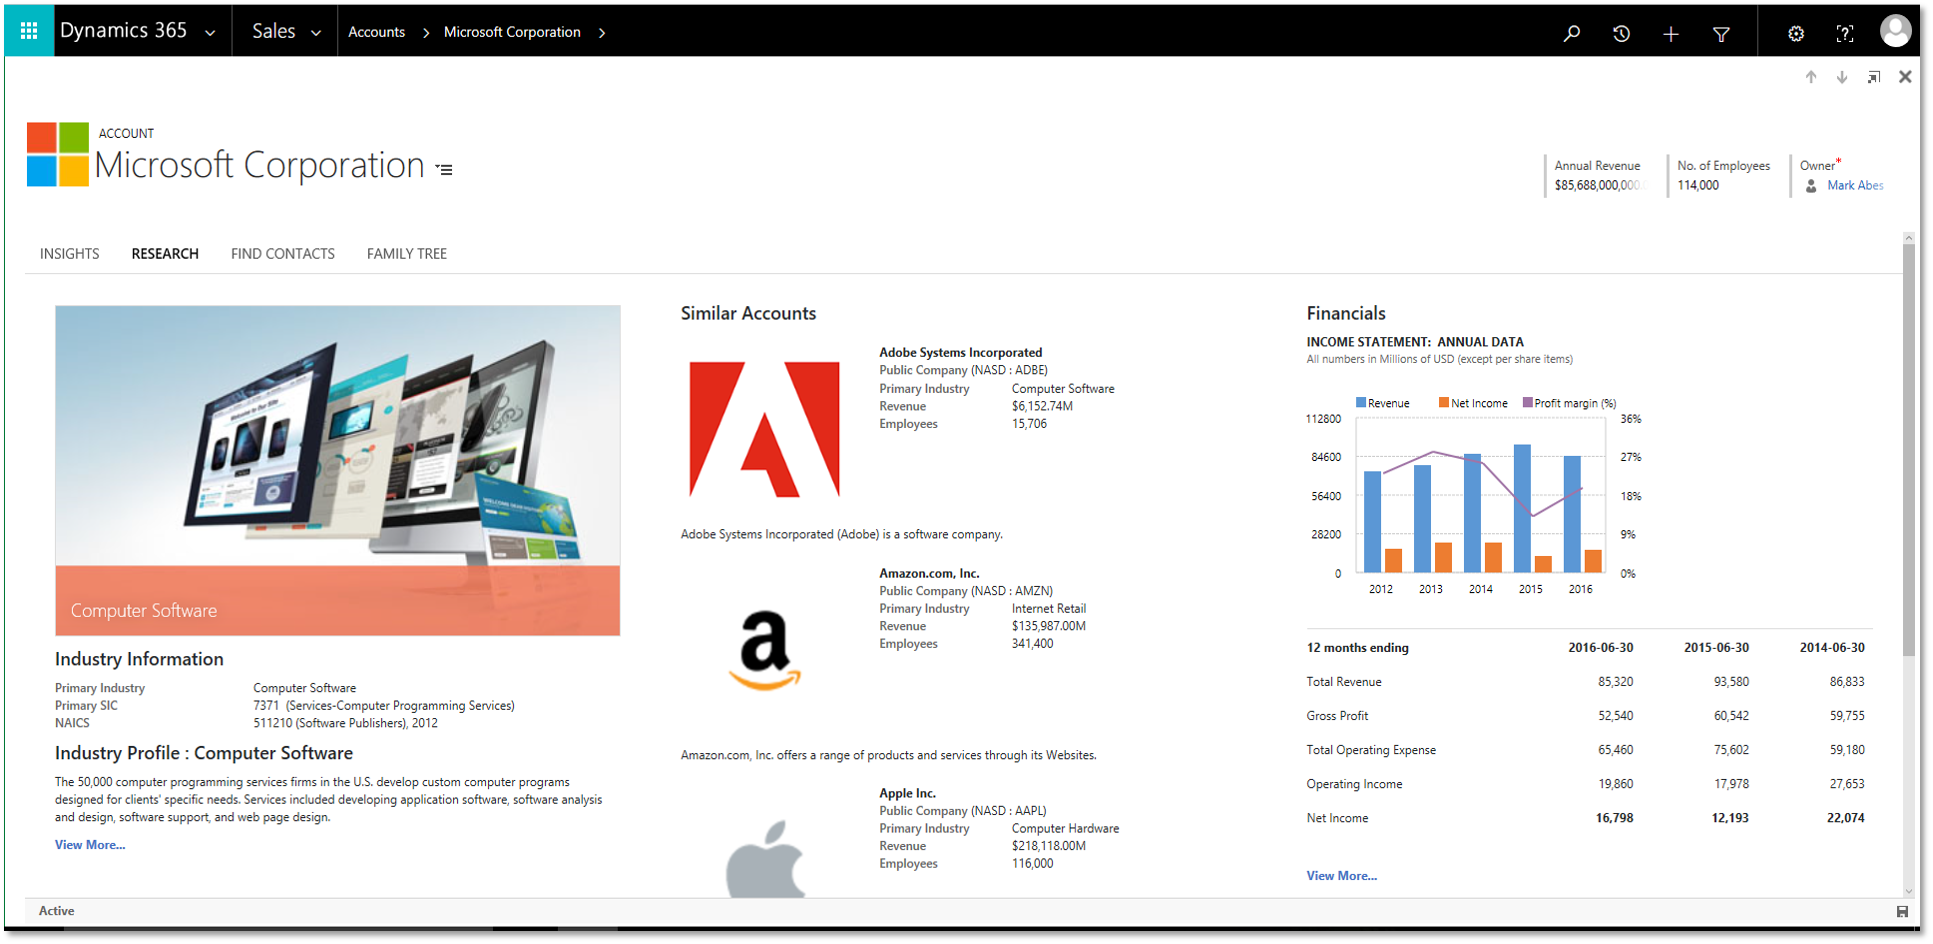 Dynamics 365 Enterprise Edition Sales - Customer Insights